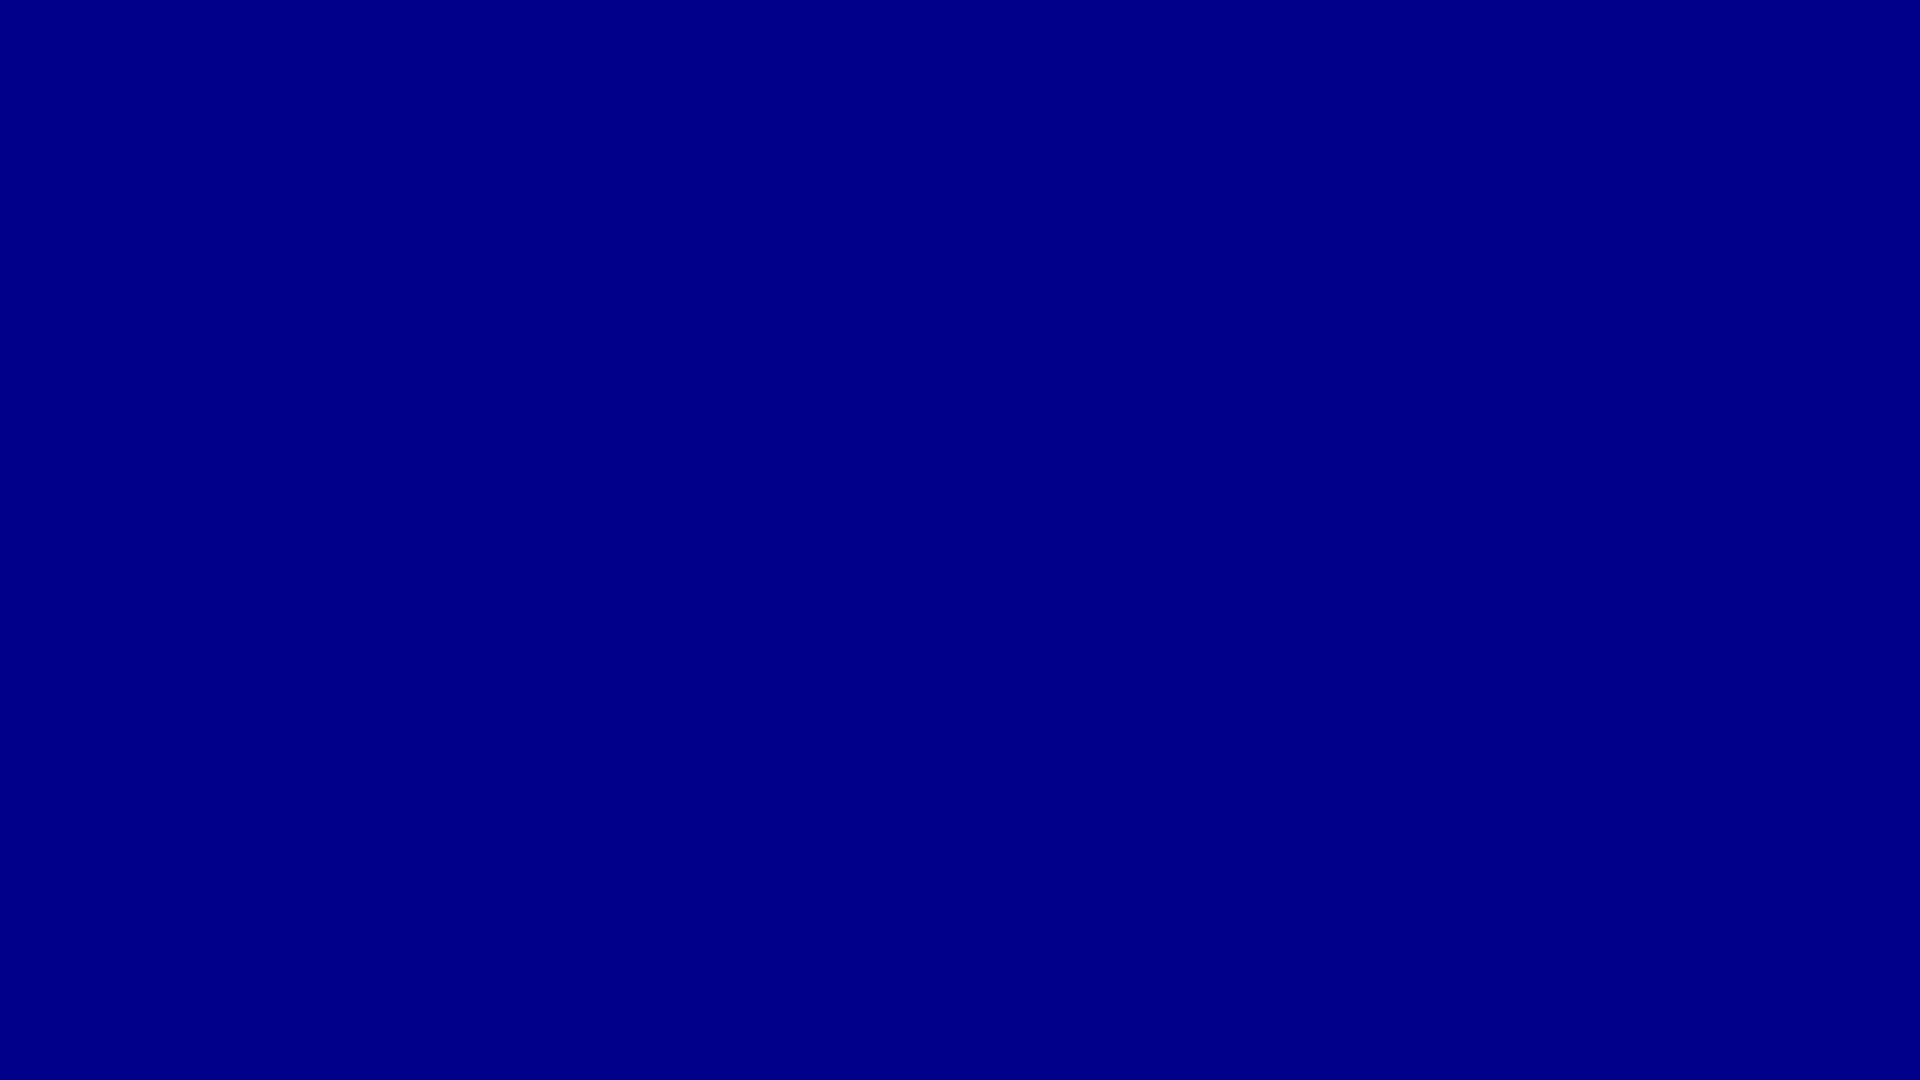 1920x1080 Dark Blue Solid Color Background